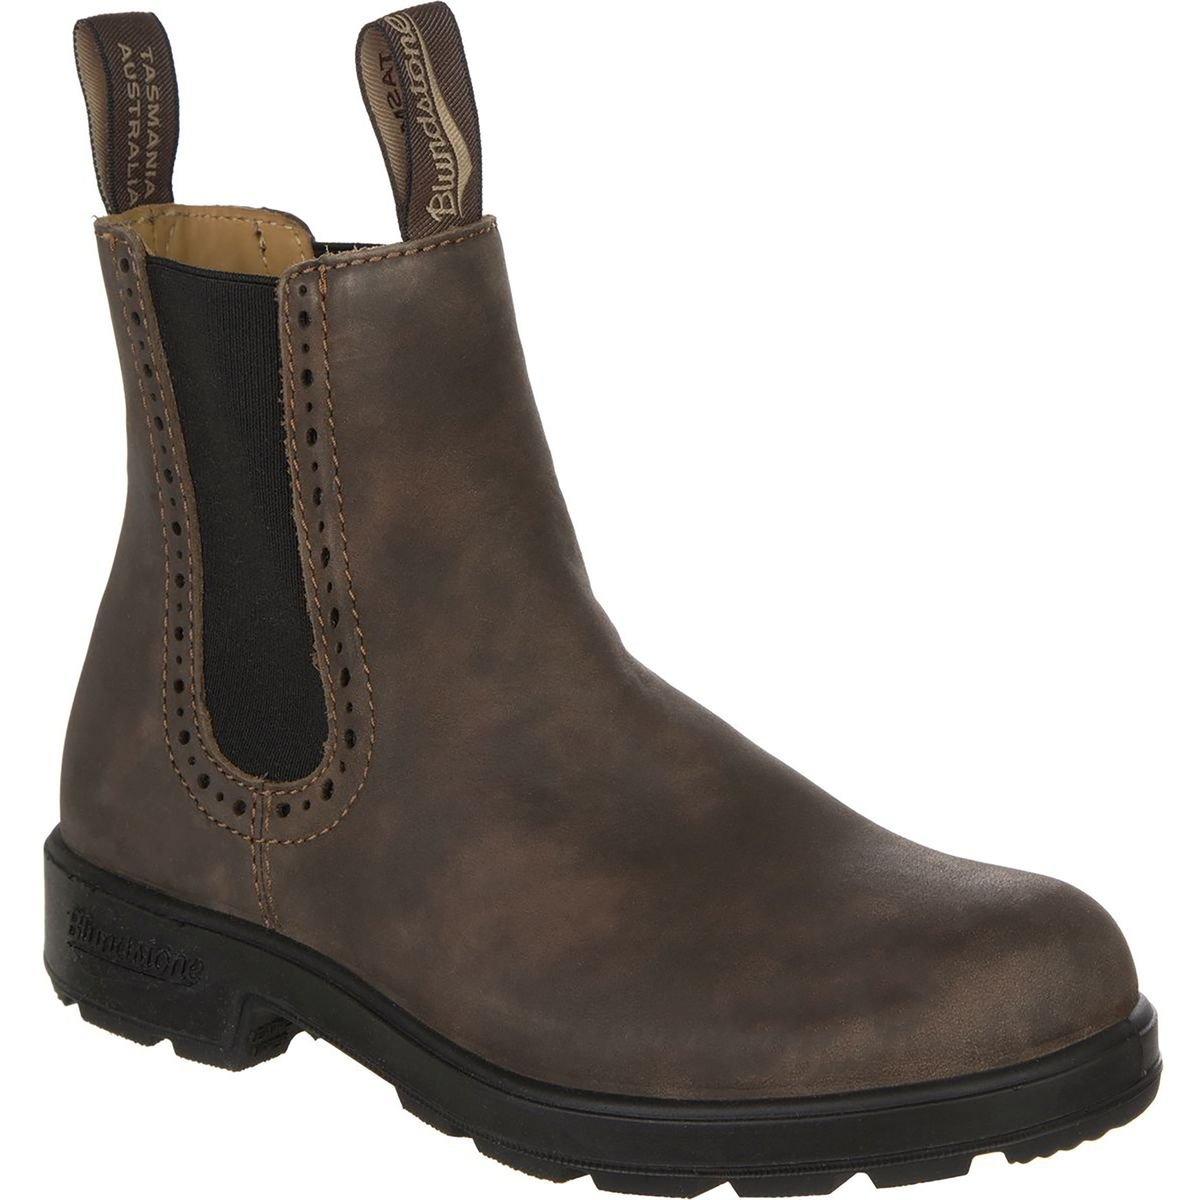 Blundstone Women's 1351 Chelsea M Boot B01ATP8PDY 4 UK/7 M Chelsea US|Rustic Brown ad86f2